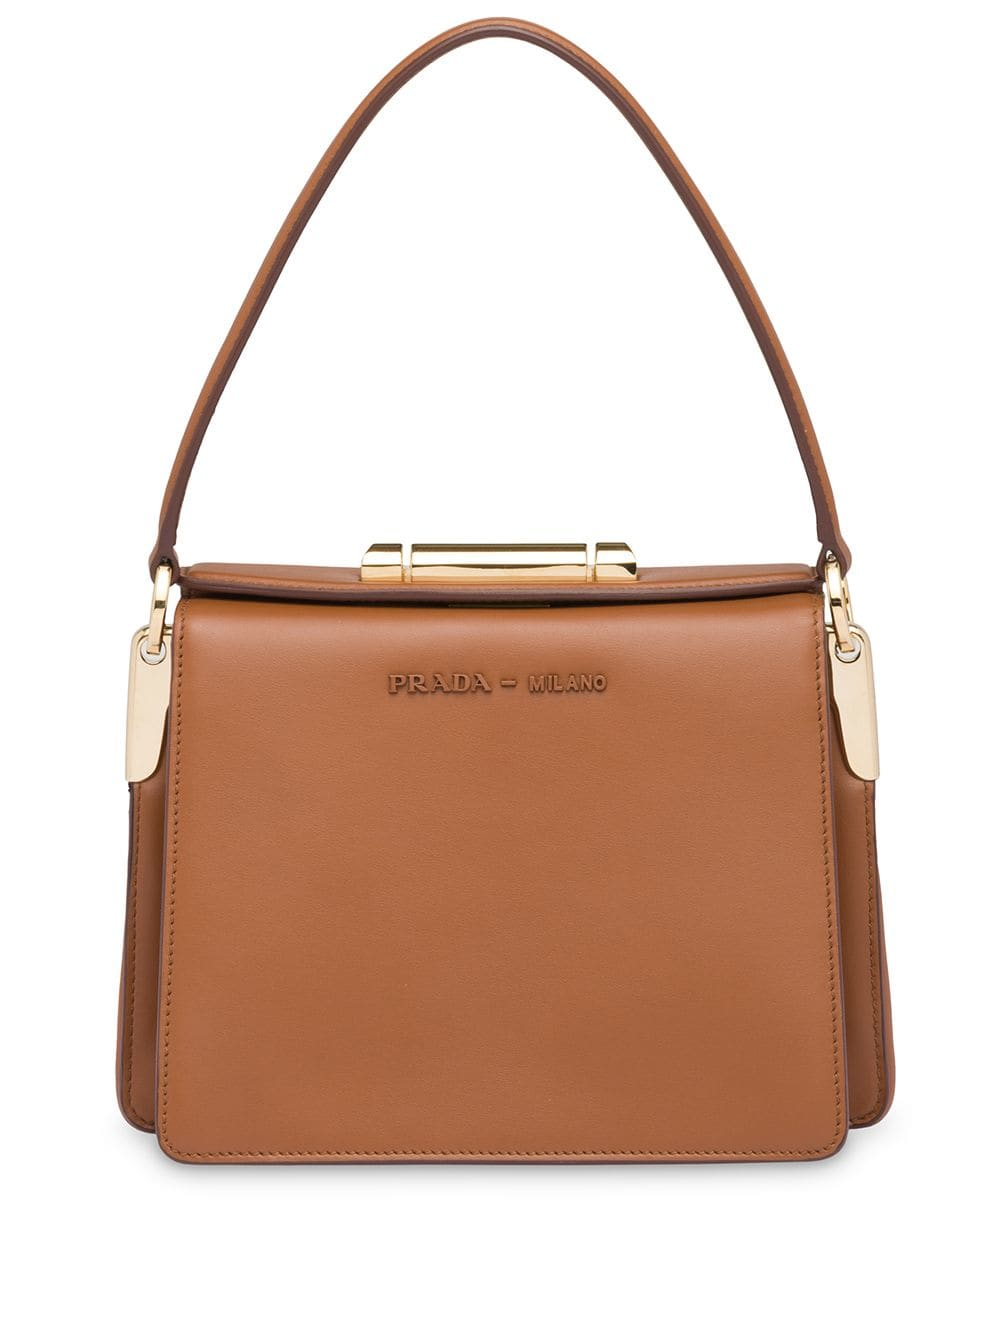 52bc8b2429 Prada Prada Sybille leather bag - Brown in 2019 | Products | Bags ...